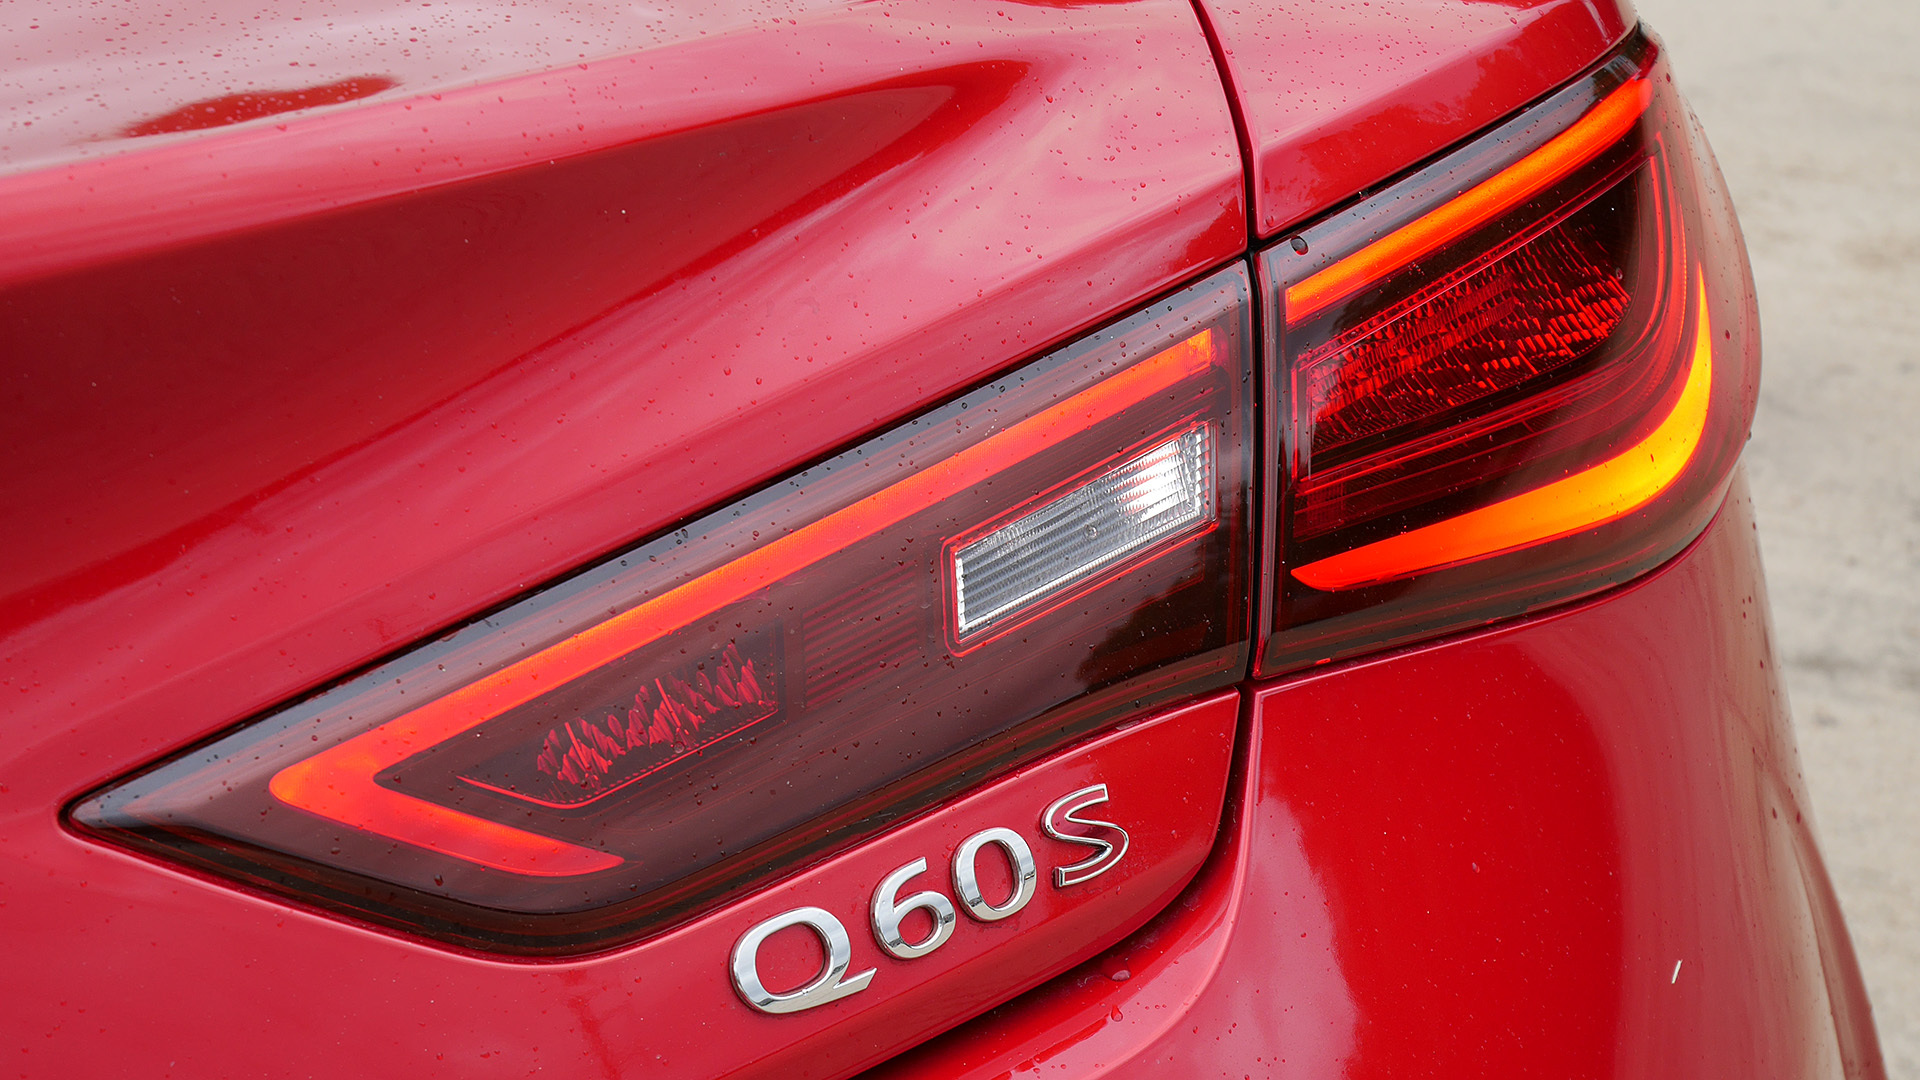 2017 Infiniti Q60 Red Exterior View Rear Emblem (Photo 23 of 32)